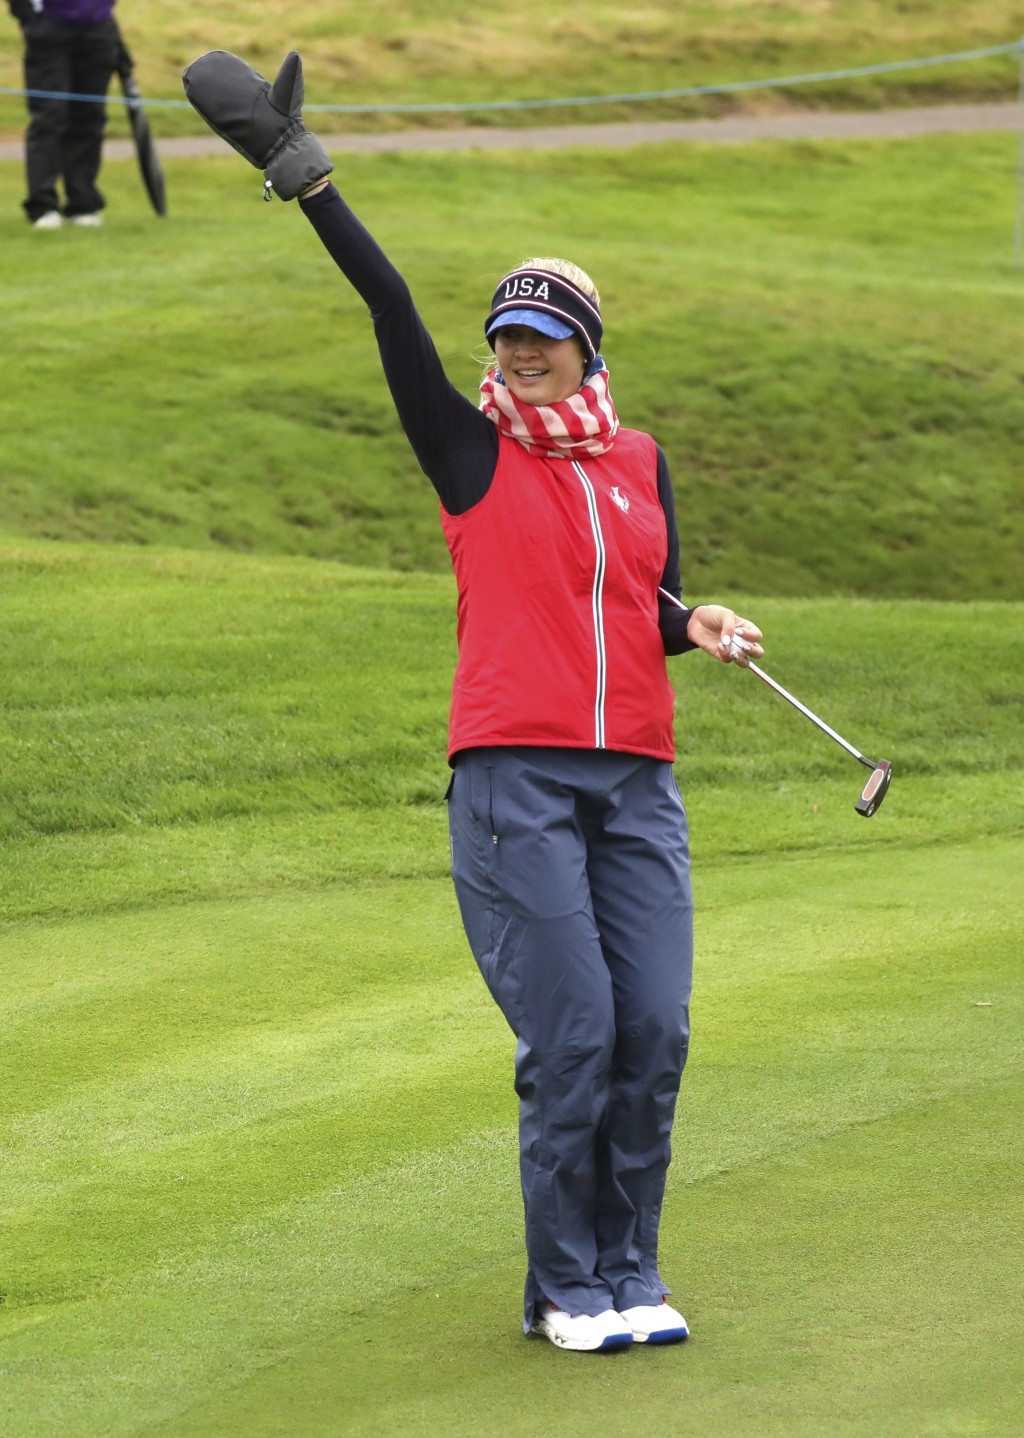 Jessica Korda of the US after holing a putt on the 3rd green during a practice round for the Solheim cup at Gleneagles, Auchterarder, Scotland, Thursd...